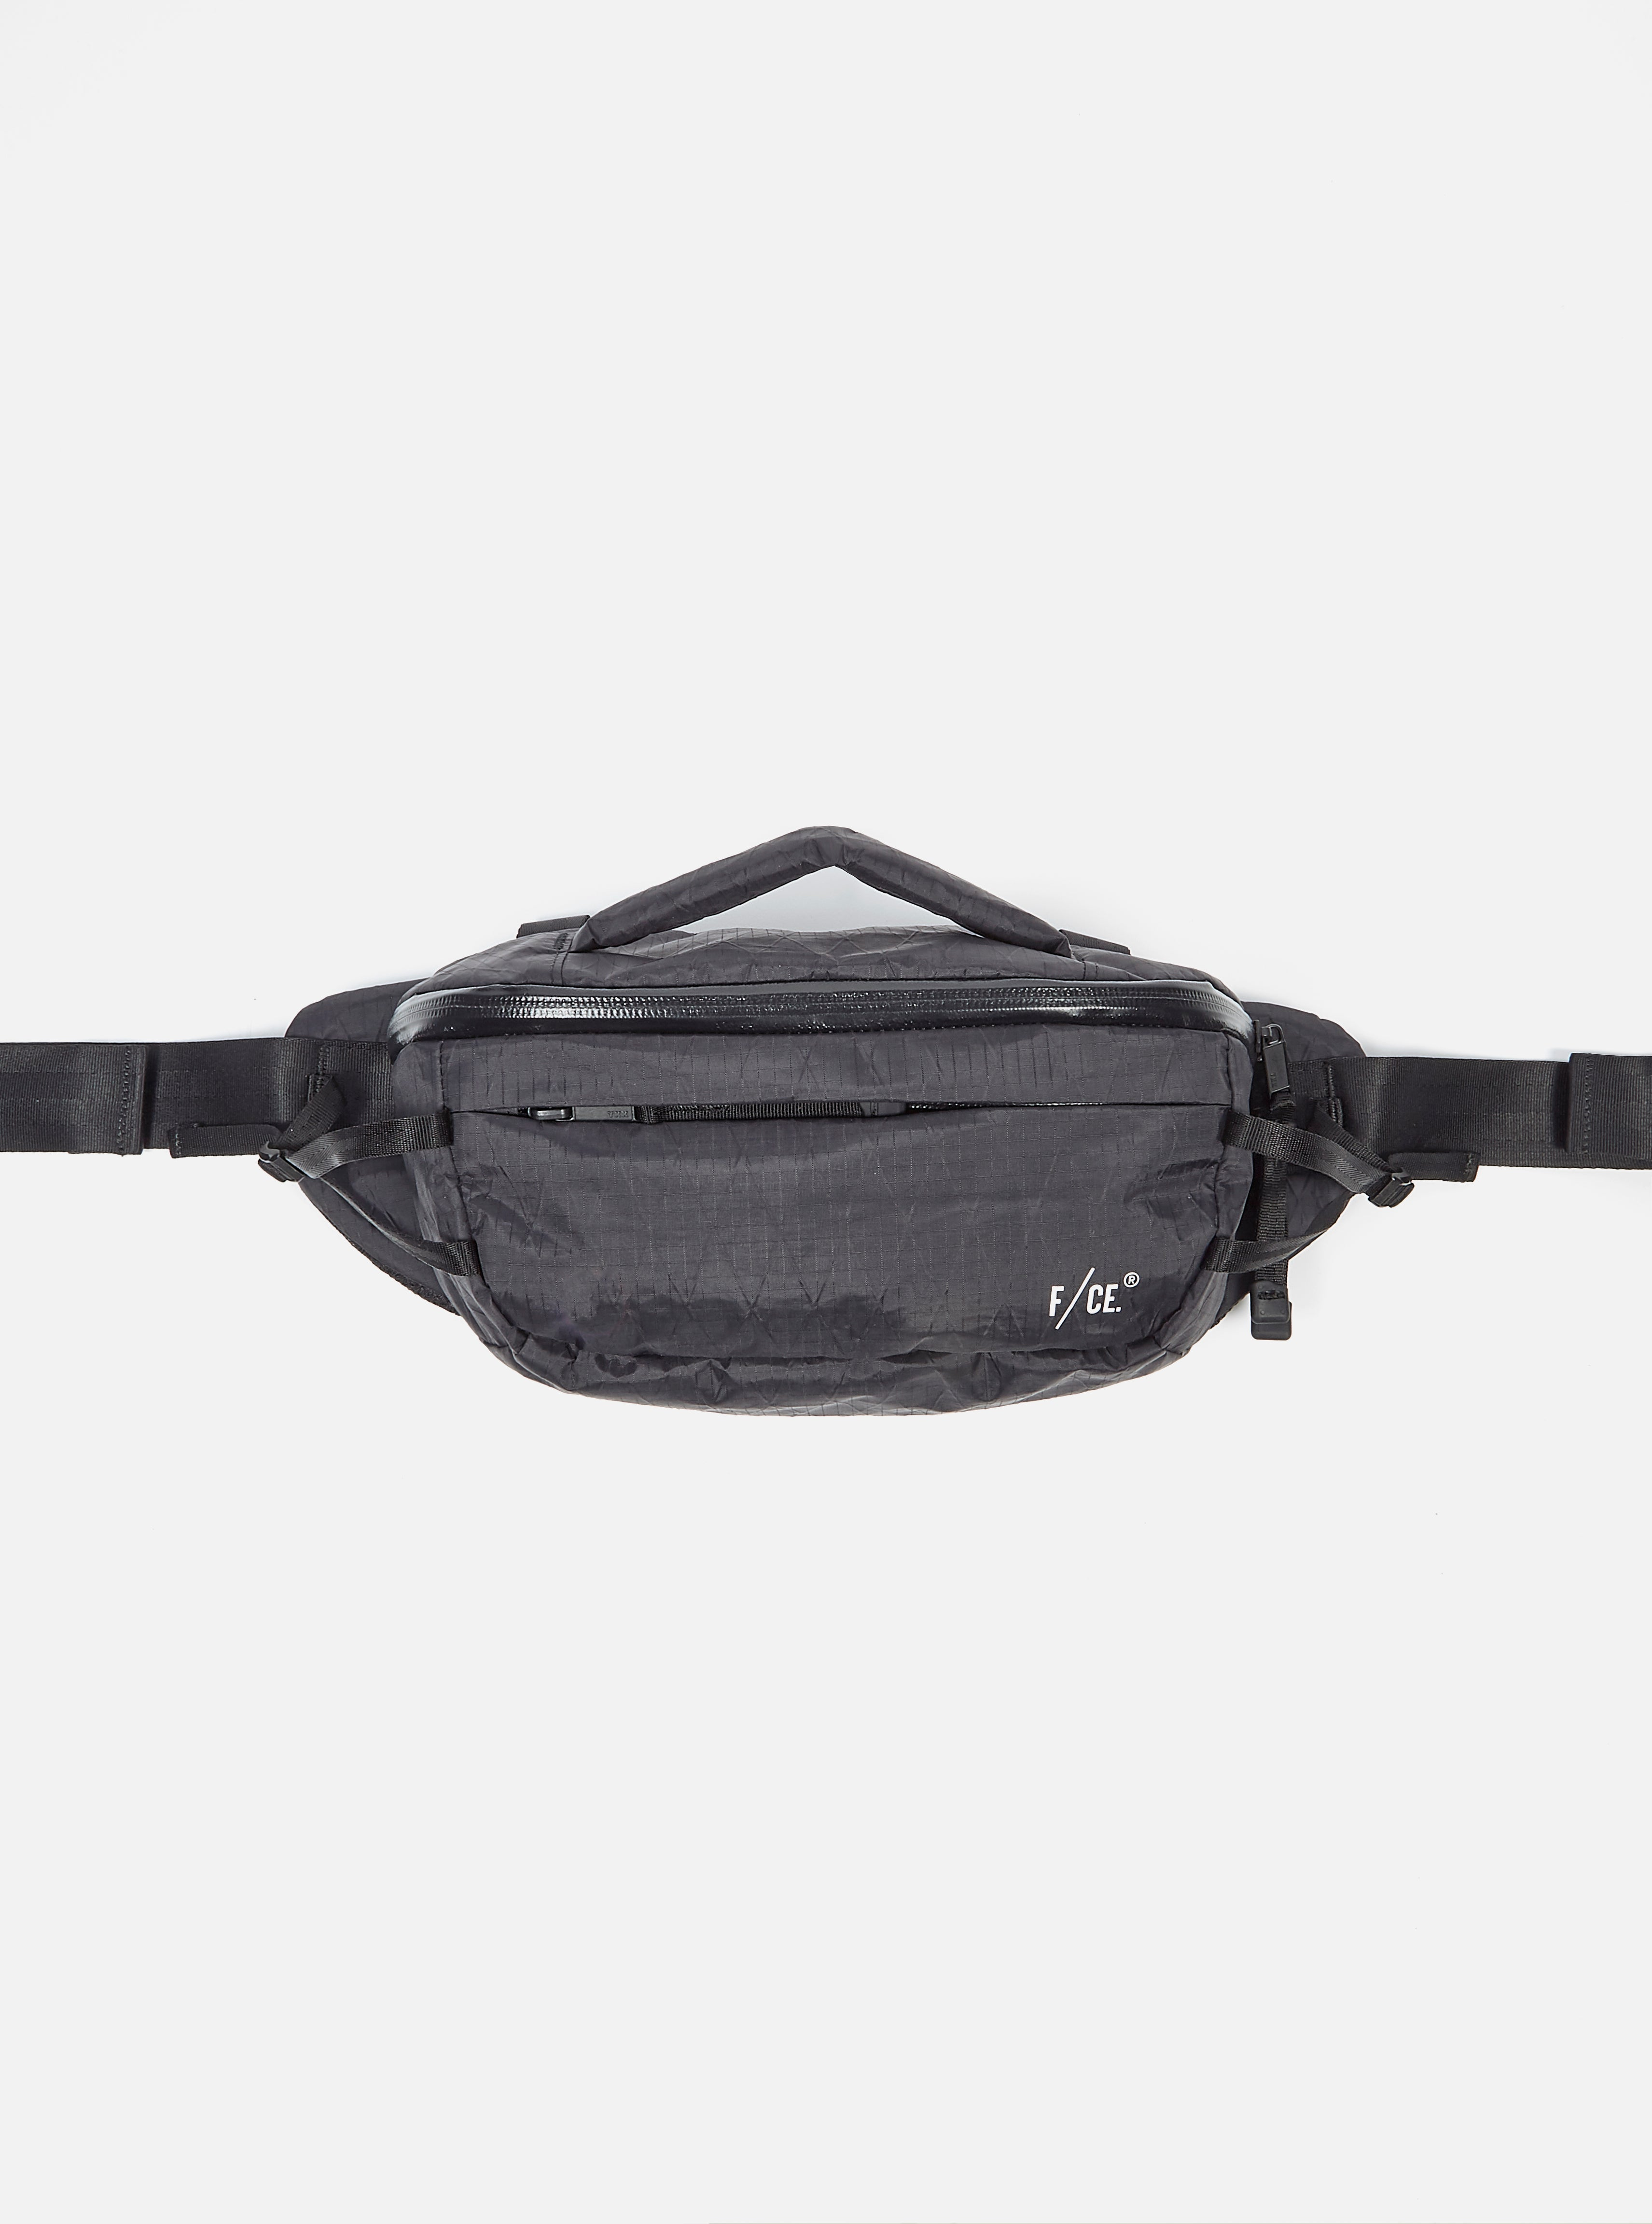 F/CE.® XPAC Utility Waist Bag in Black Ripstop Nylon